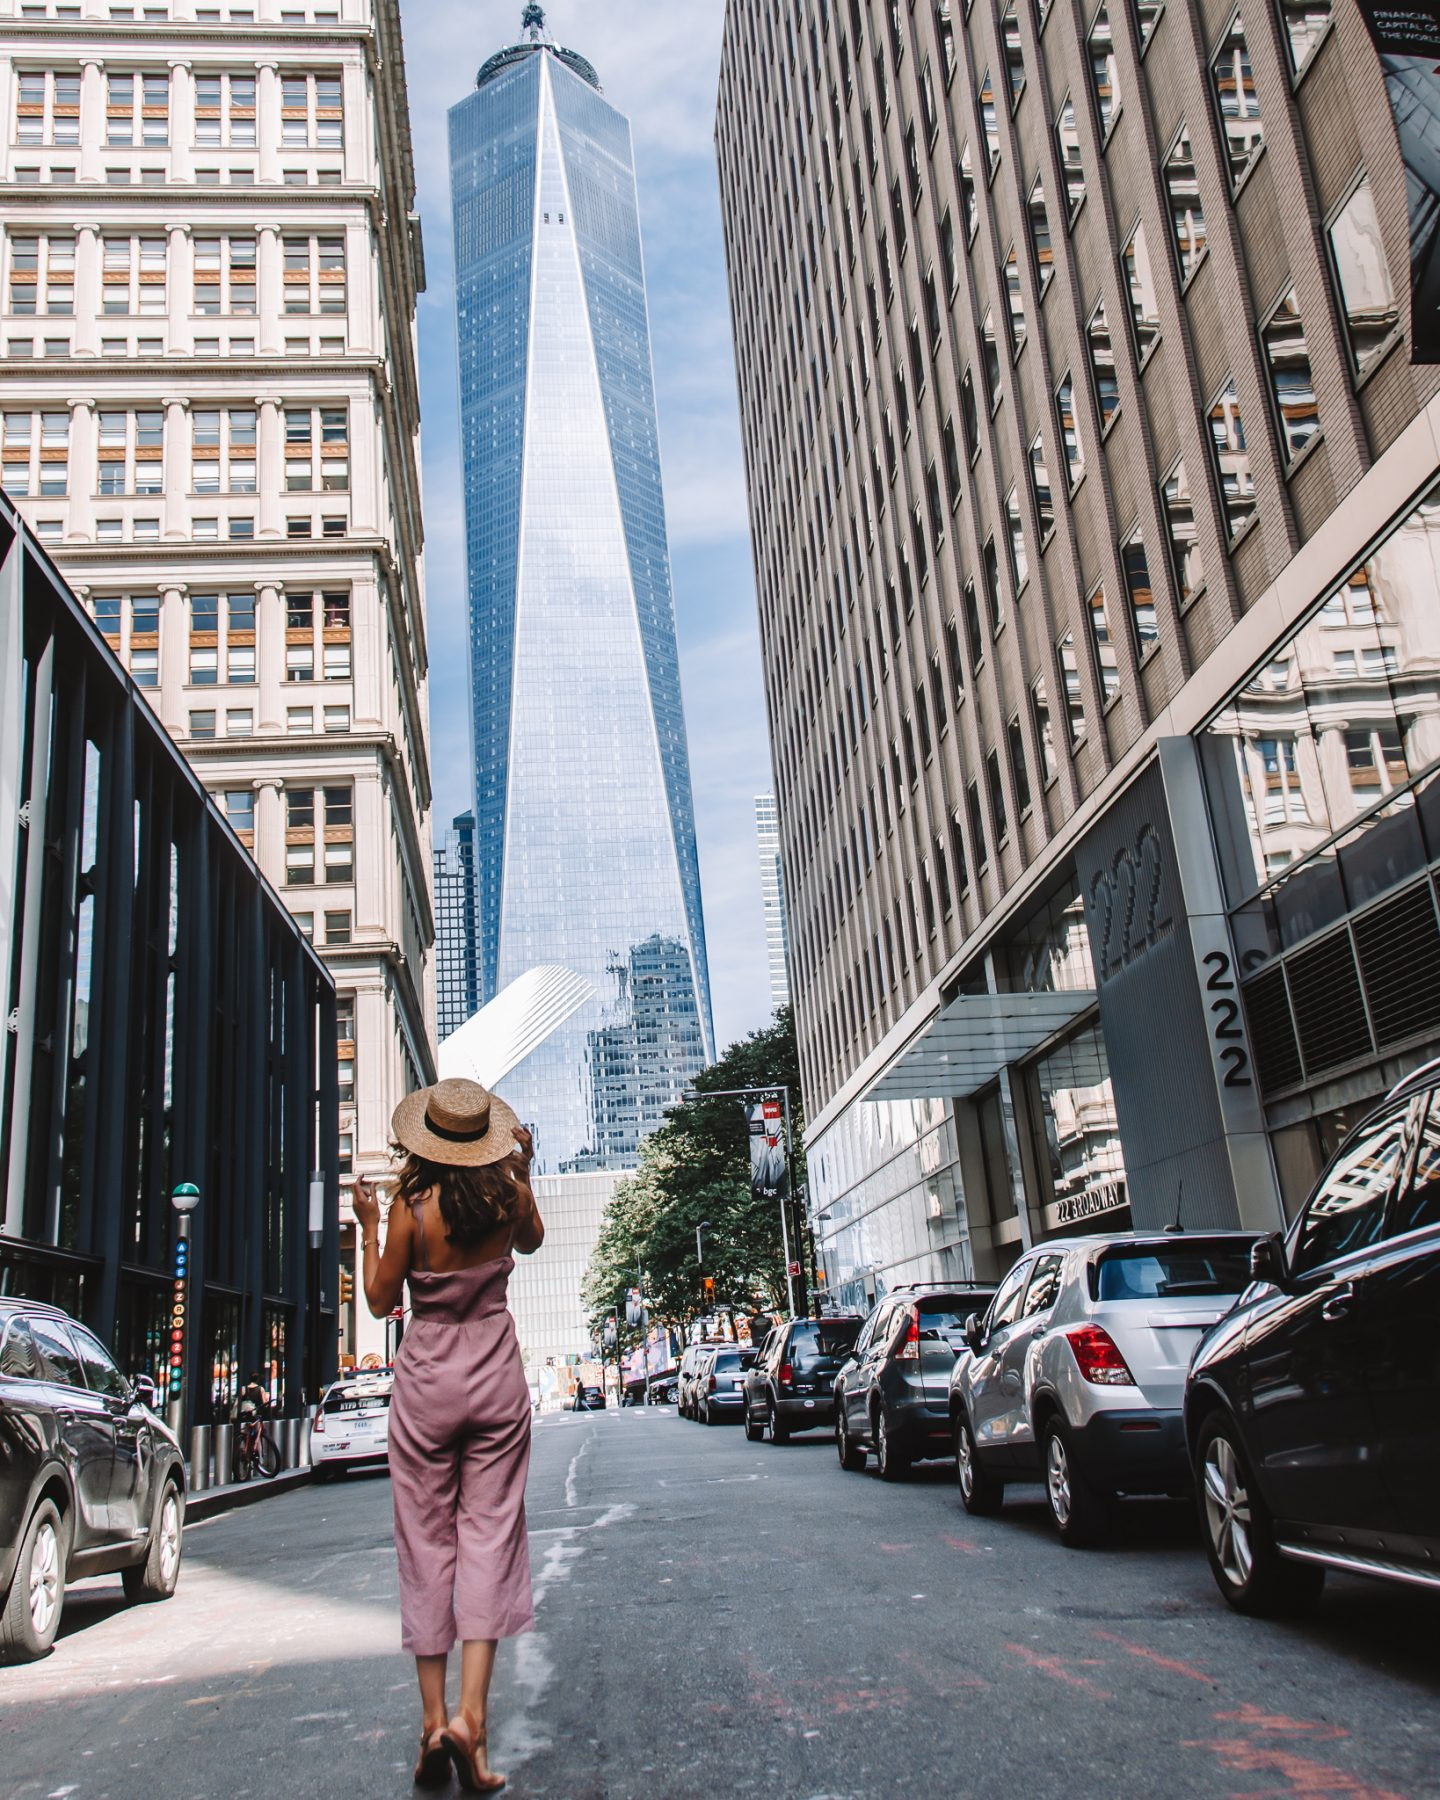 A girl posing in front of the Freedom Tower